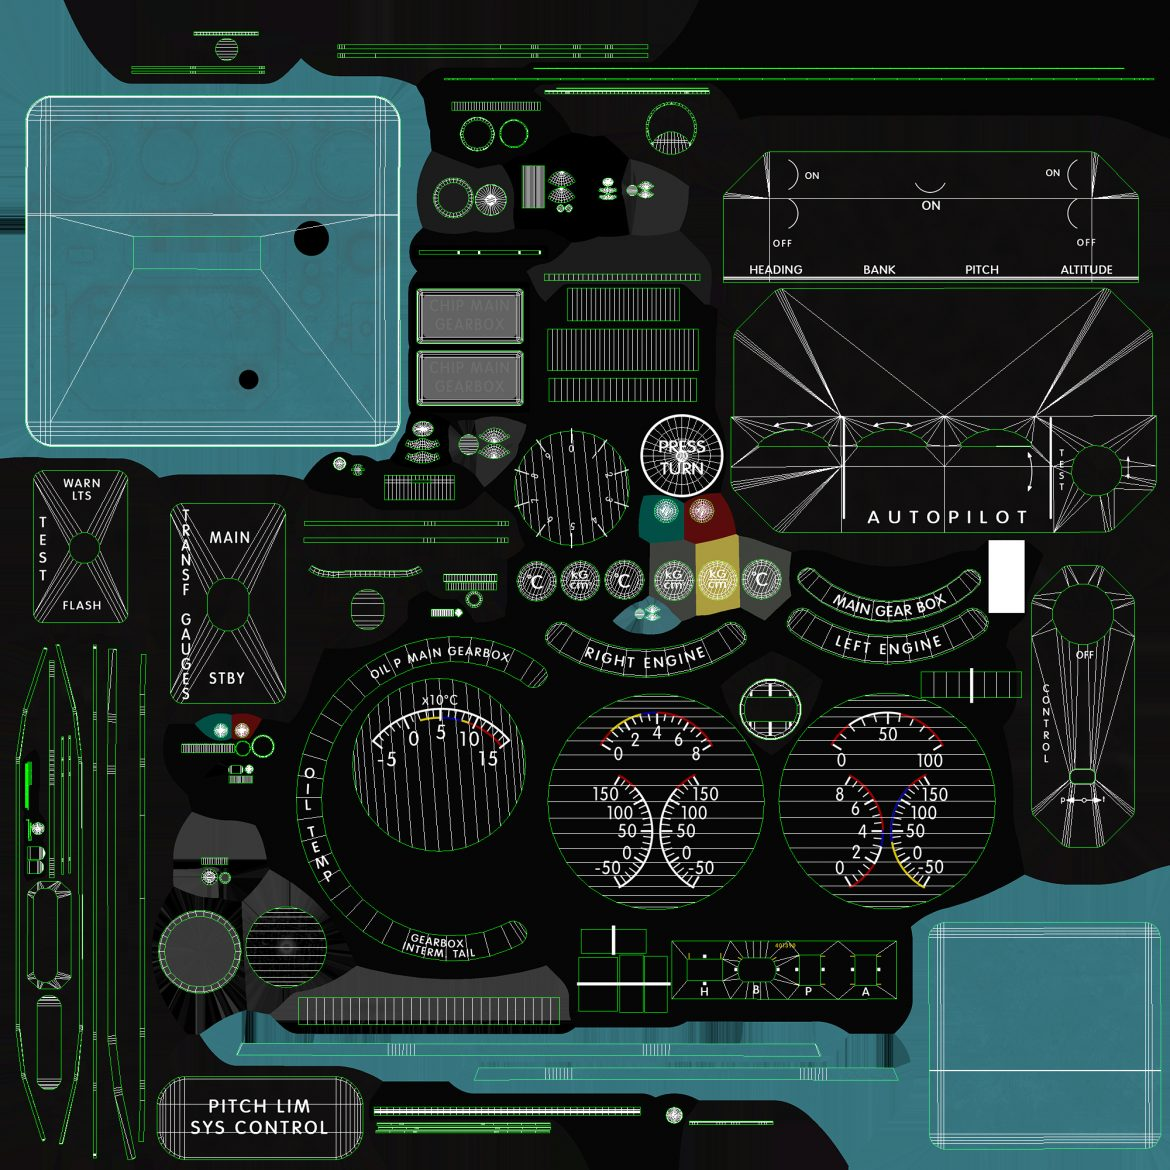 mi-8mt mi-17mt panel boards english 3d model 3ds max fbx obj 301986